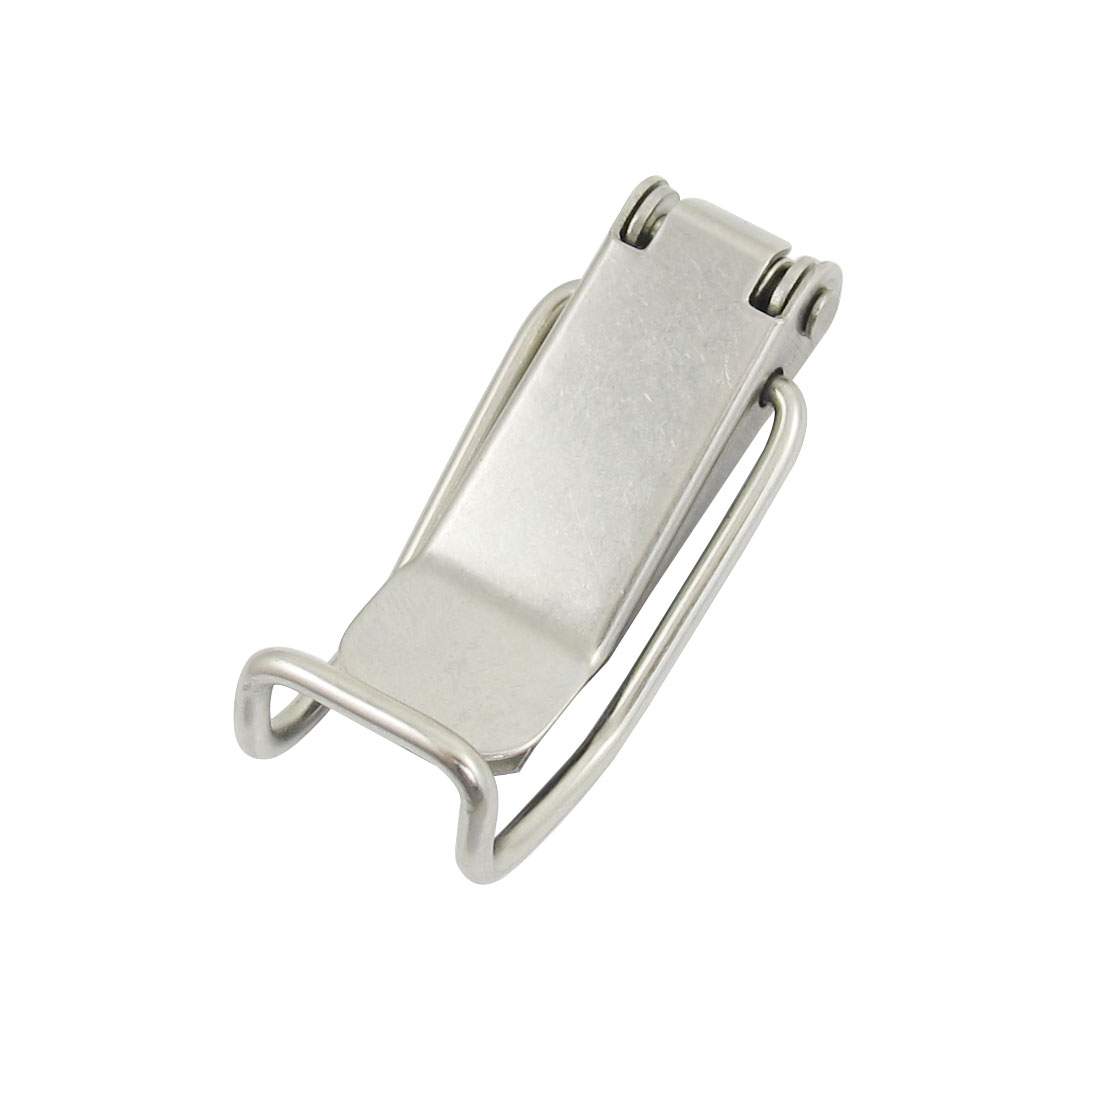 "Drawer Closet Hardware 2.7"" Long Stainless Steel Toggle Latch Catch"